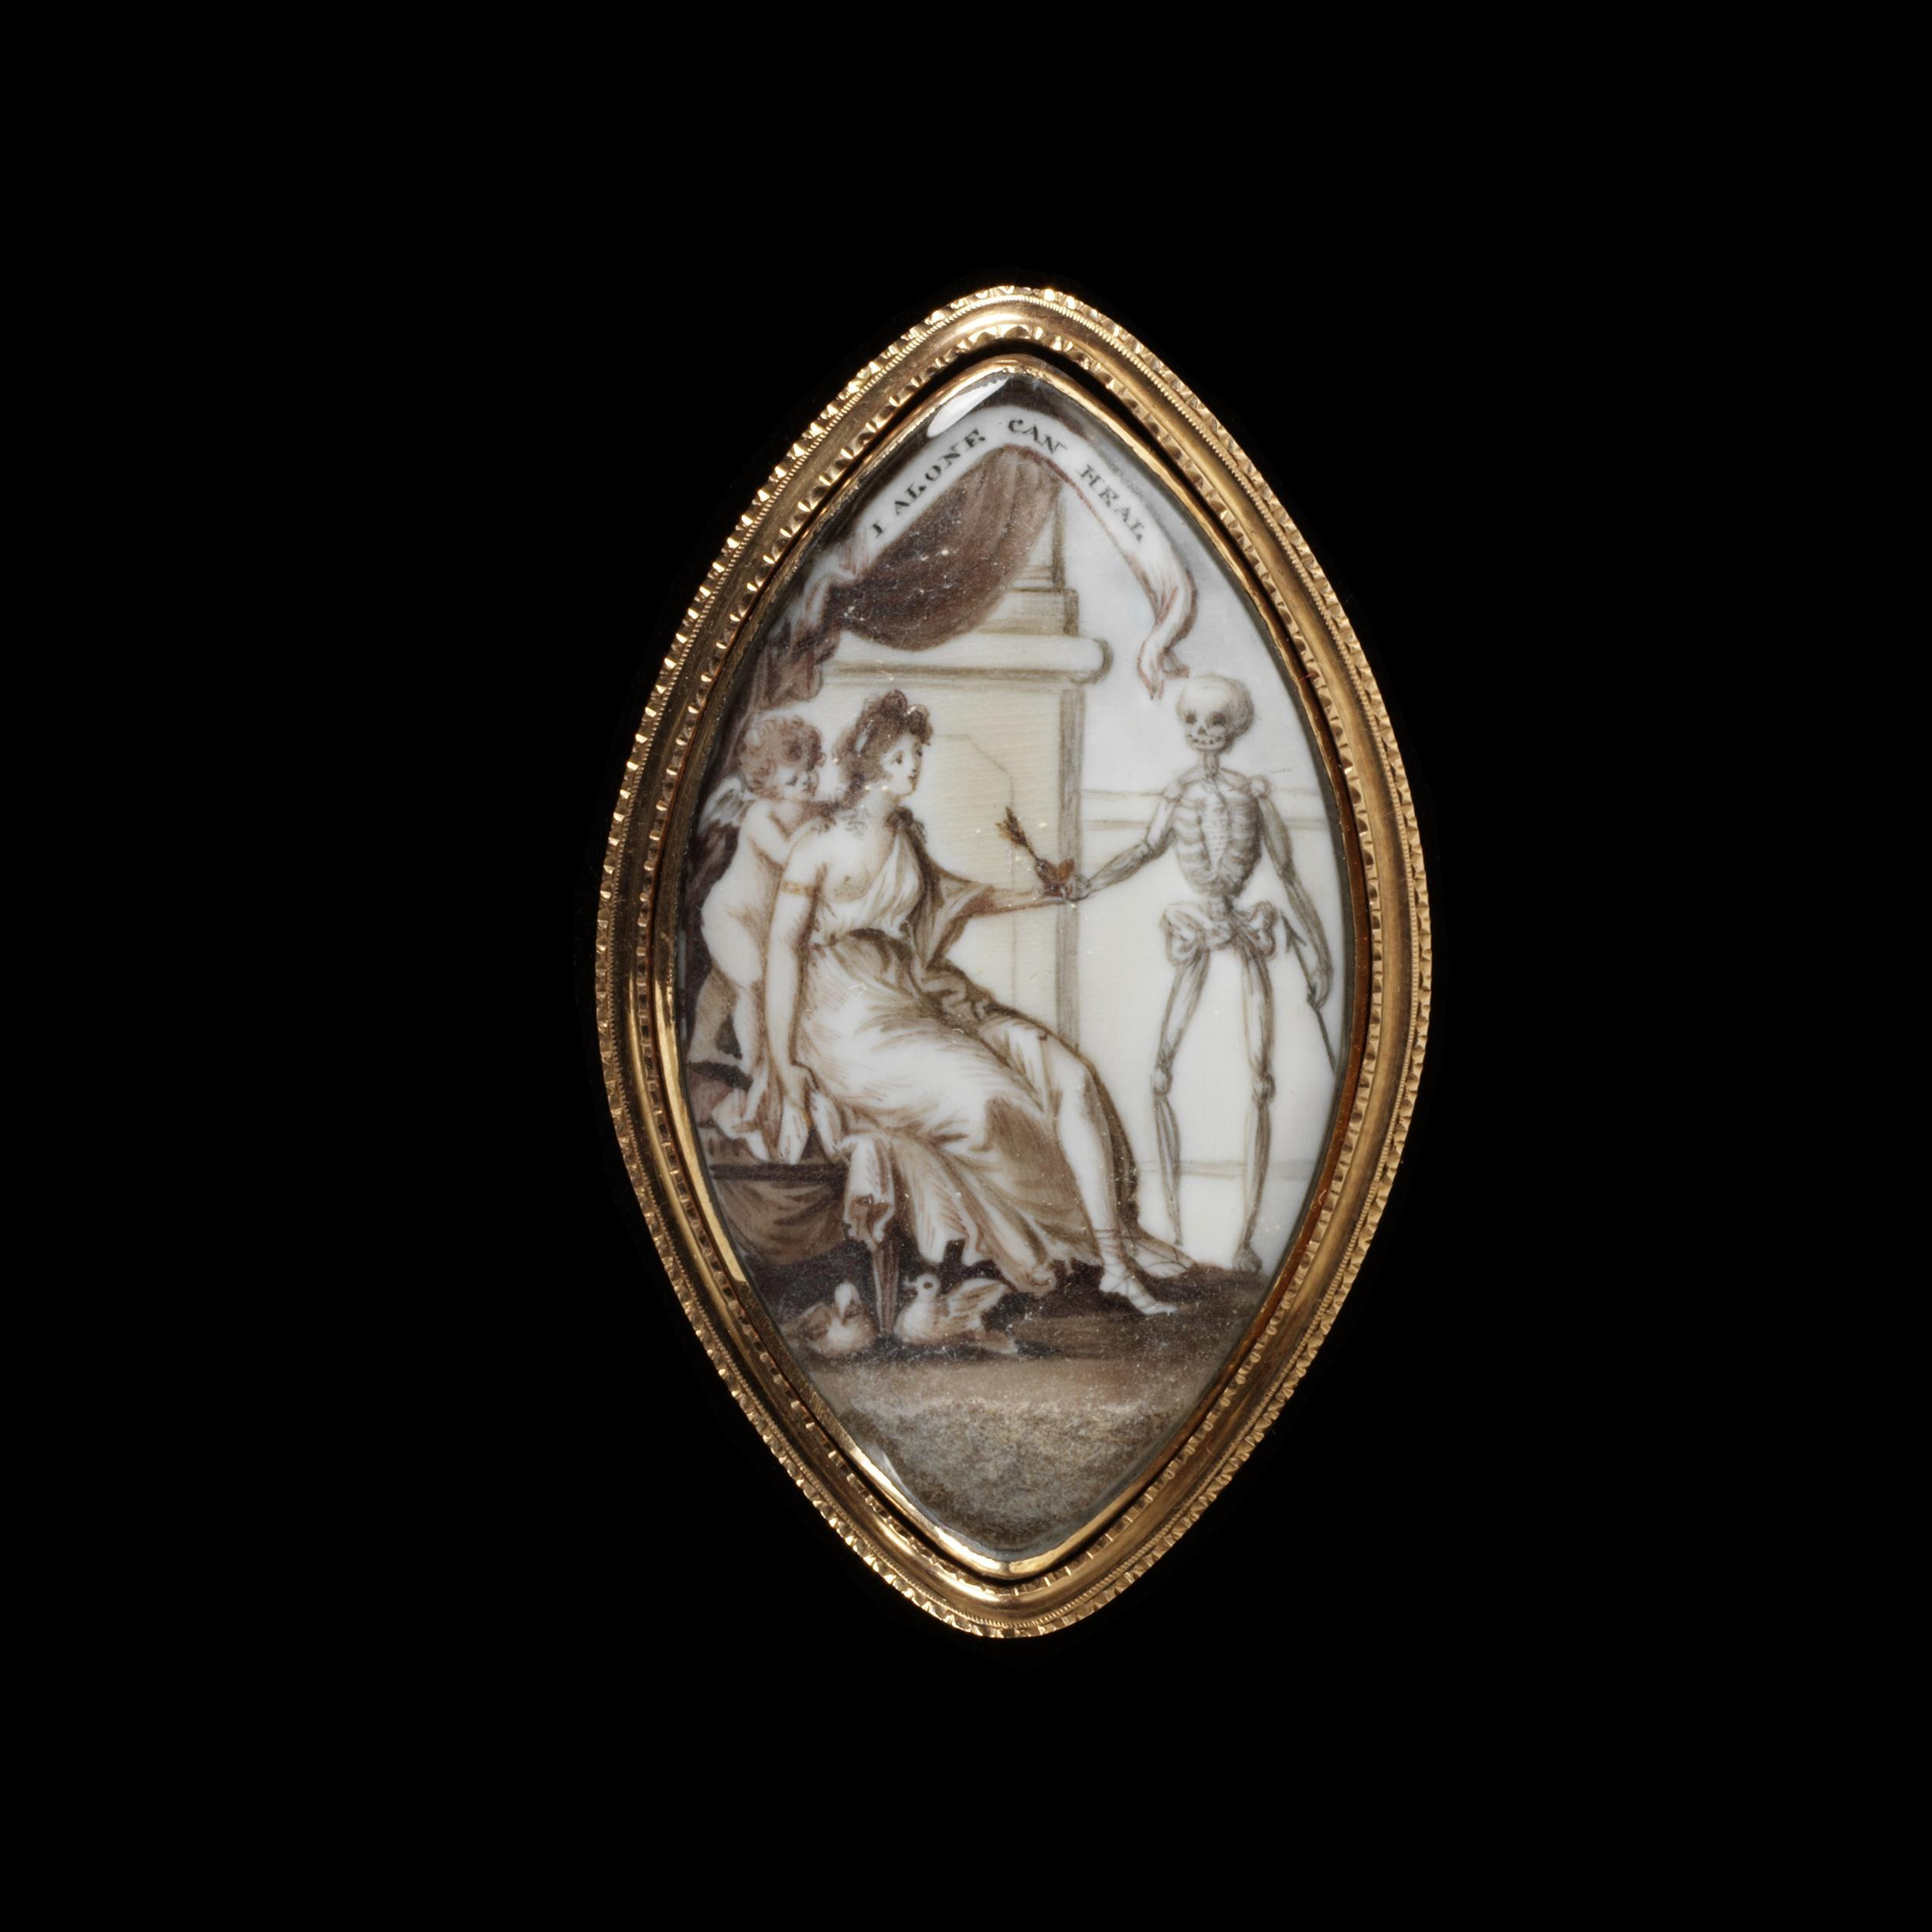 Engraved gold frame, ivory painted in watercolour with a miniature of a woman handing a heart pierced by an arrow to a figure of Death, surmounted by an inscription I ALONE CAN HEAL The back of plaited hair crossed by the name Fergusson on paper. Exposed breast.